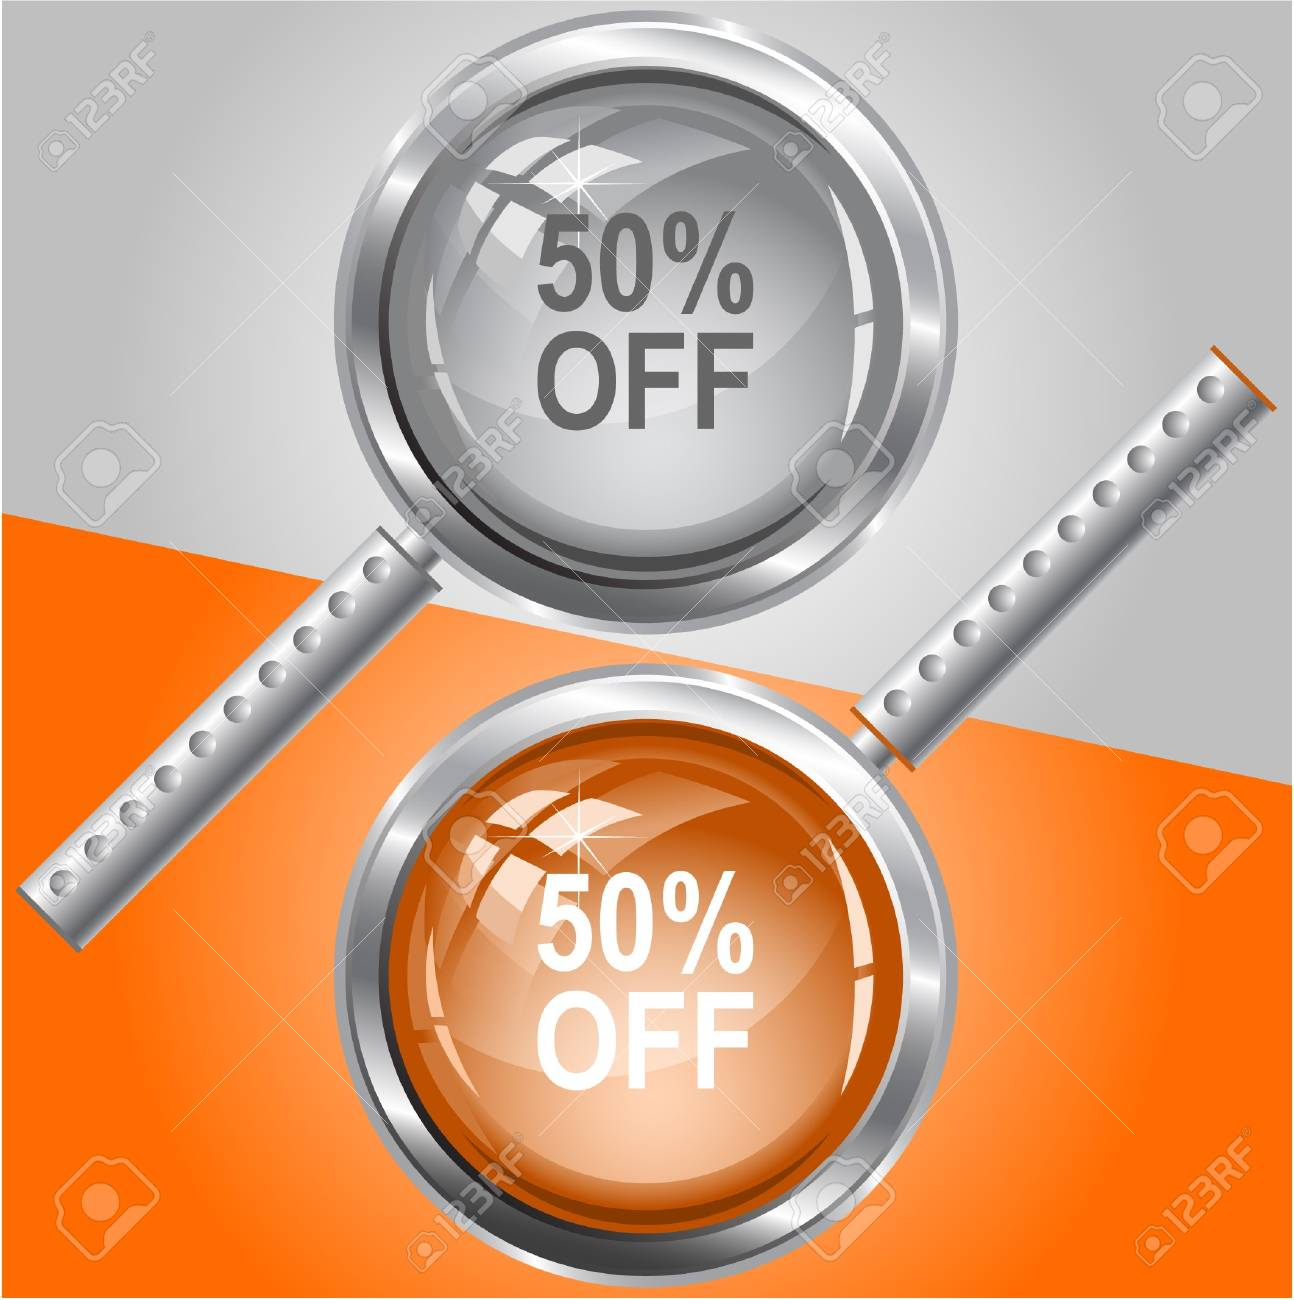 50% OFF. magnifying glass. Stock Vector - 7176071